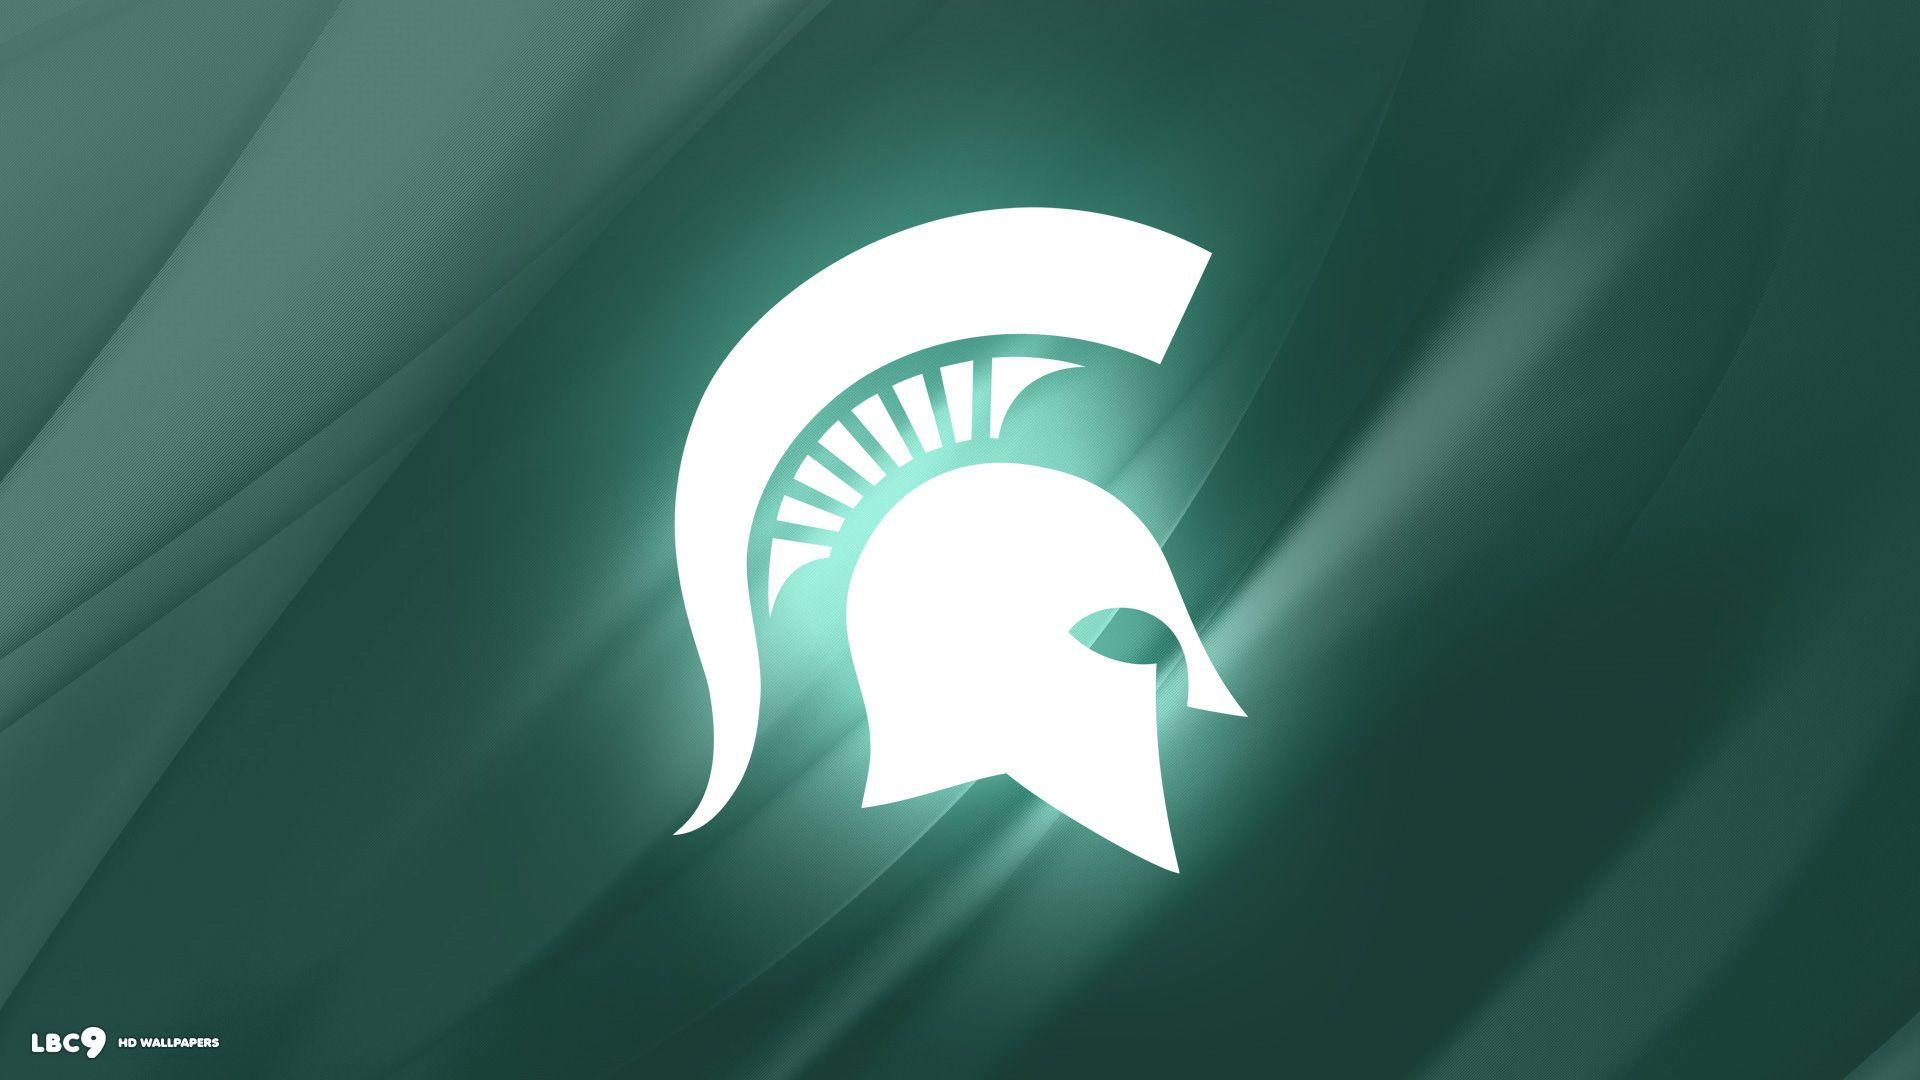 Michigan State University Wallpapers: Spartan Wallpapers